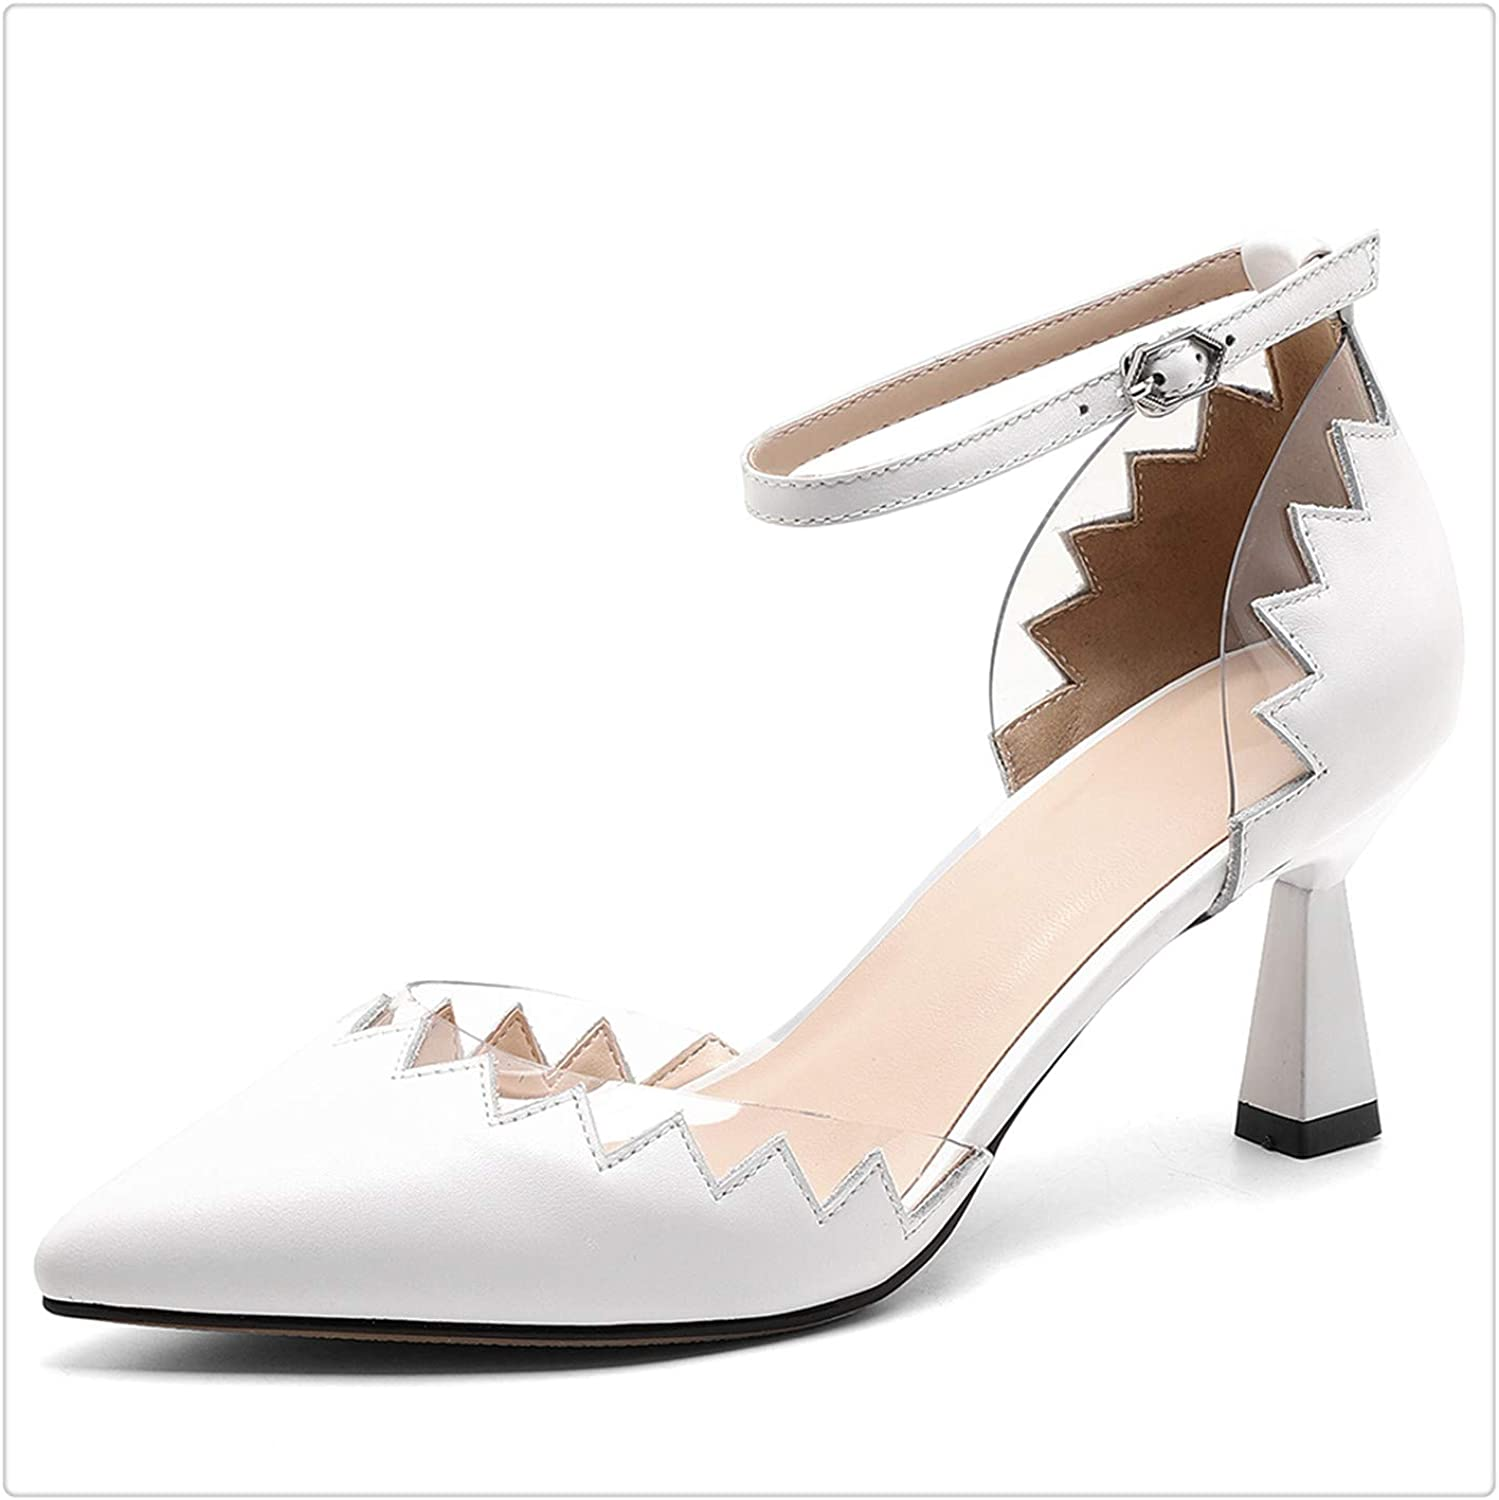 Yyixianma Genuine Leather shoes Women Buckle Pointed Toe Elegant Sandals Woman shoes